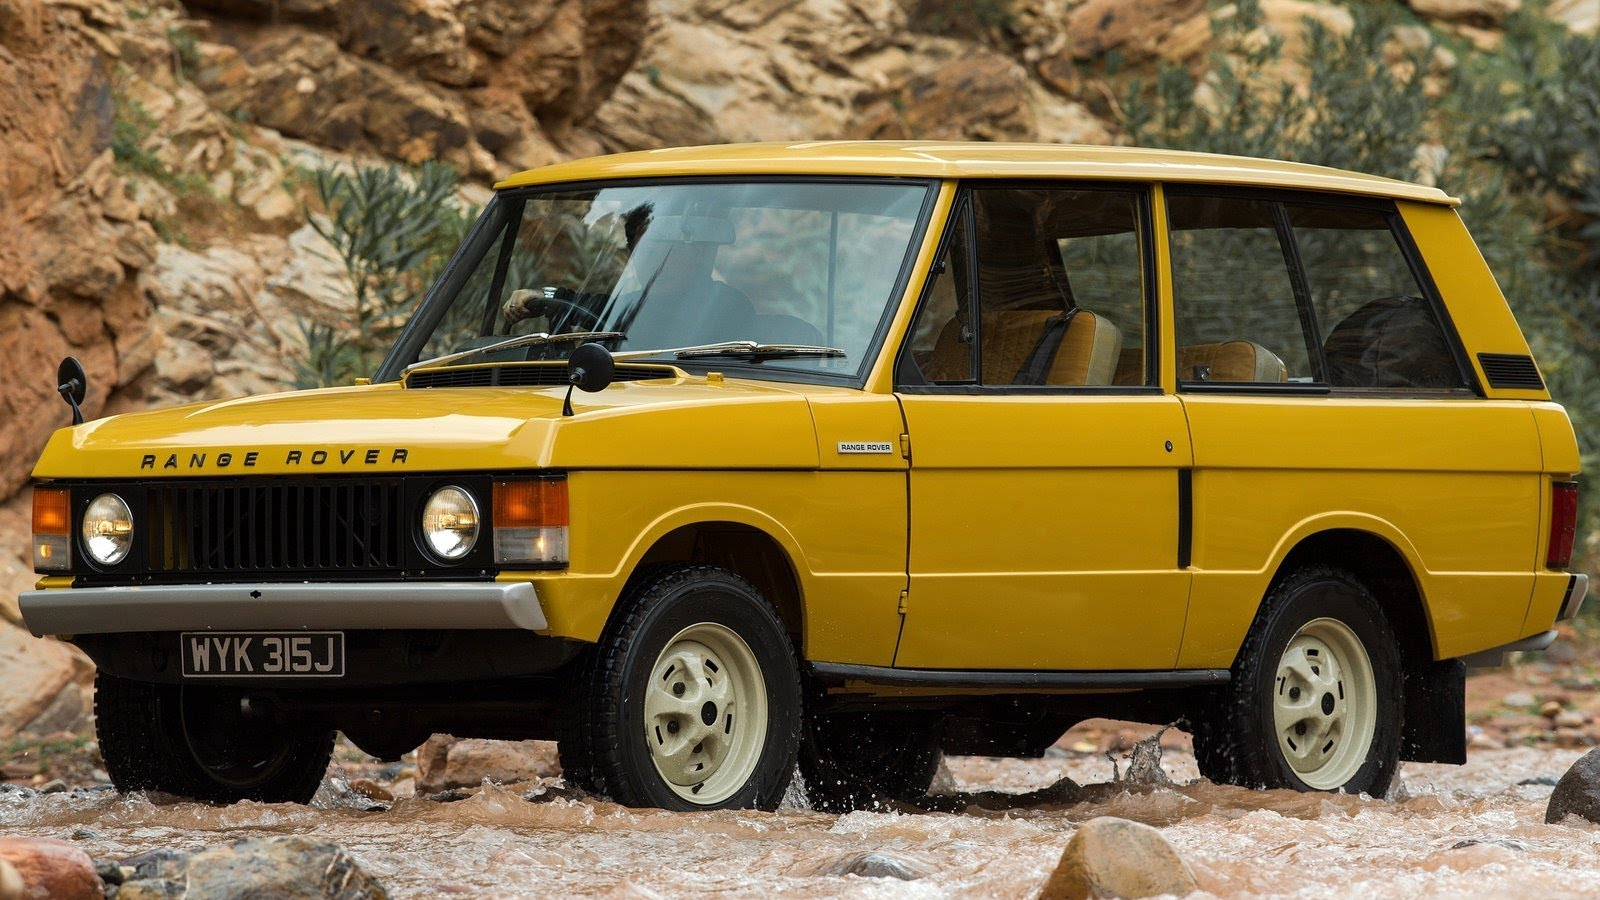 The Range Rover was launched, creating an entirely new sector, the luxury off-road car. This sector grew enormously over the next four decades.